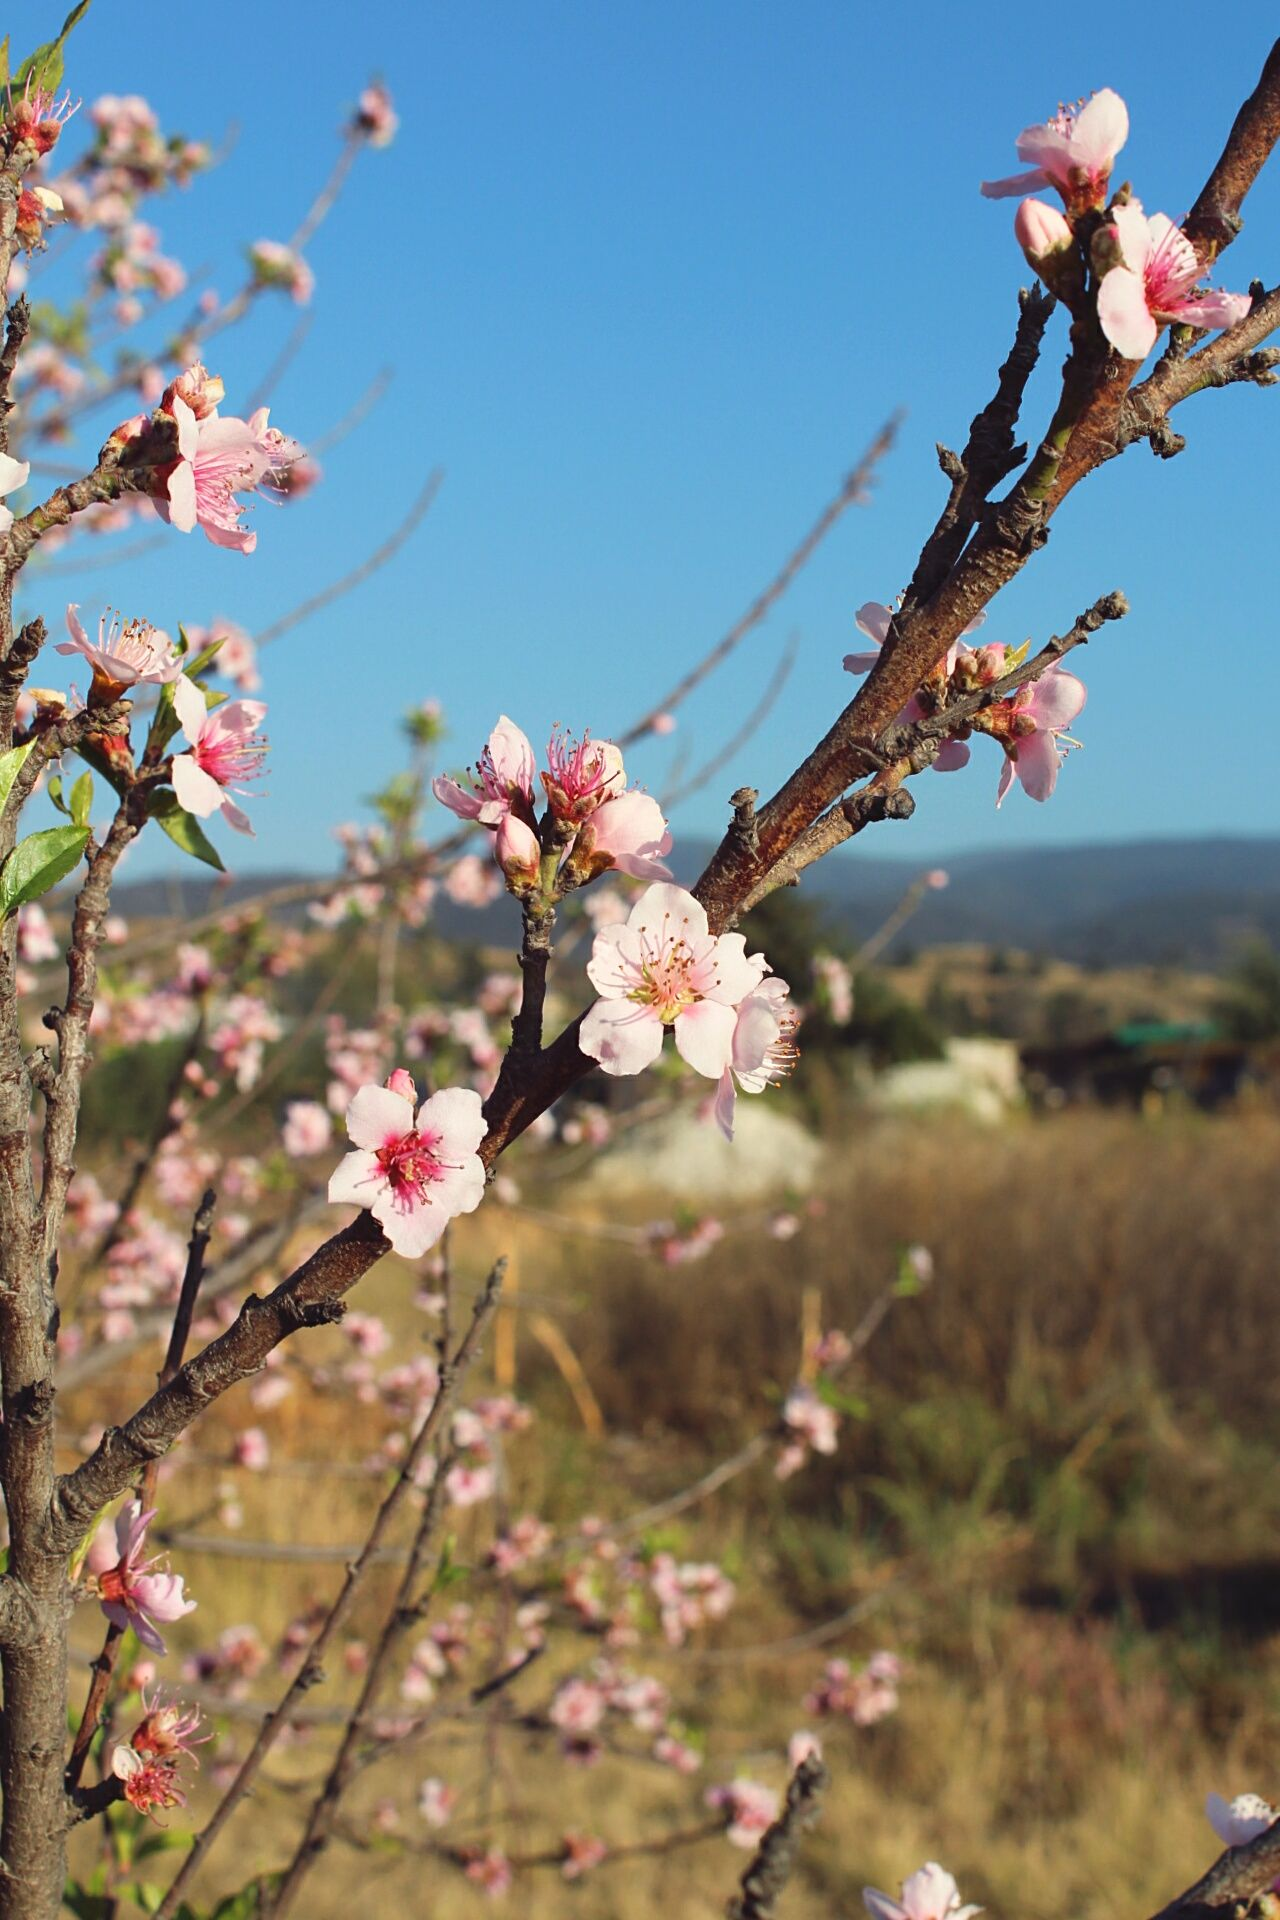 Paisaje. Flower Blossom Springtime Almond Tree Nature Pink Color Tree Close-up Outdoors Beauty In Nature Scenics Fragility Branch No People Lifestyles Illuminated Freshness Plant Beauty In Nature Nature Pink Backgrounds Flower Head Day Sky